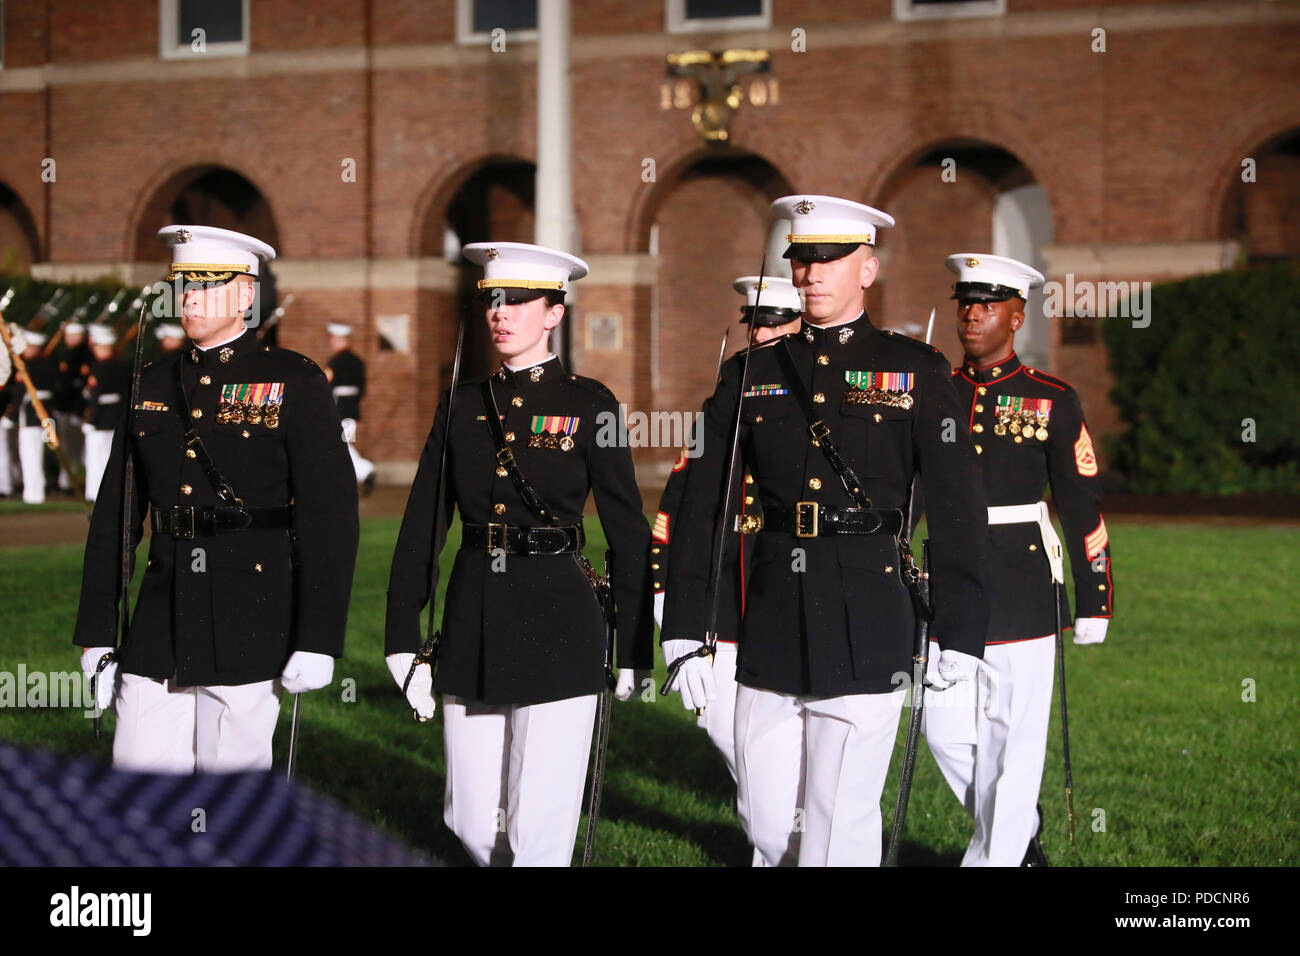 Marines with the Marine Barracks Washington D.C. parade marching staff march across the parade deck during a Friday Evening Parade at the Barracks, Aug. 03, 2018. The guests of honor for the parade were Ms. Ryan Manion, president, Travis Mannion Foundation, and U.S. Marine Corps Col. Tom Manion, retired, chairman emeritus, Travis Manion Foundation. The hosting official was Lt. Gen. Michael G. Dana, director, Marine Corps Staff. - Stock Image